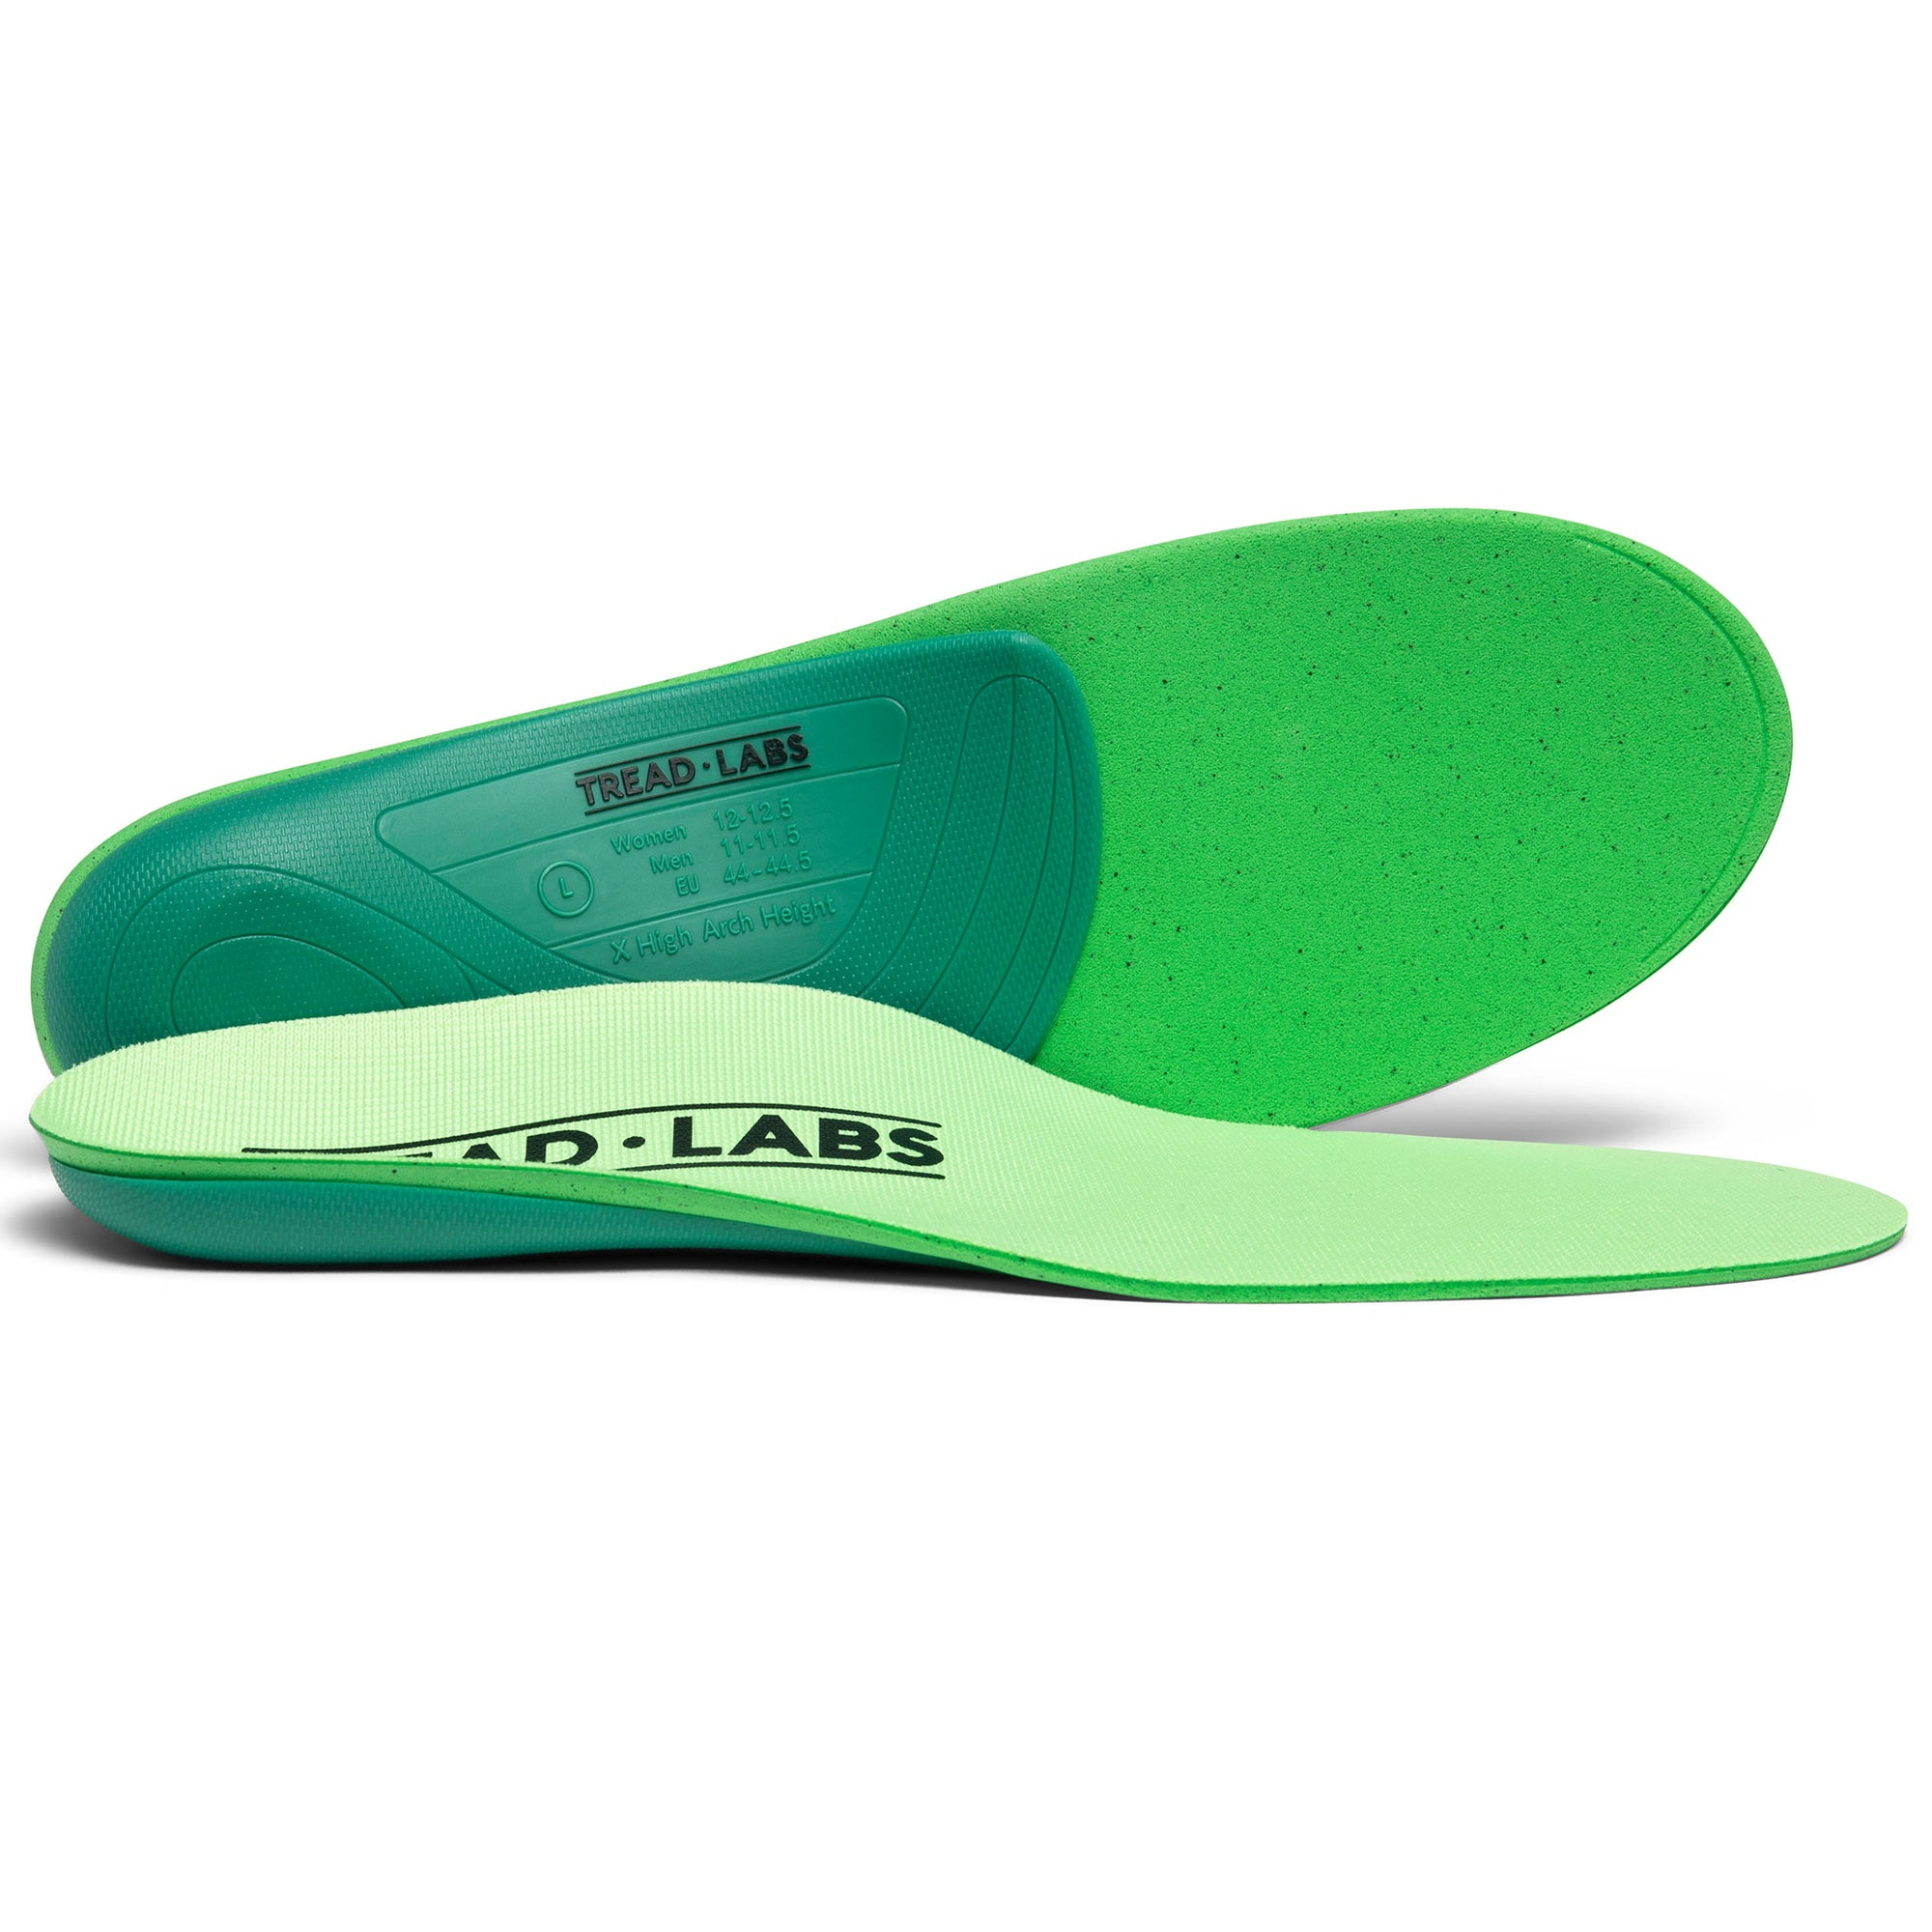 Ramble Thin Comfort Series Insoles From Tread Labs